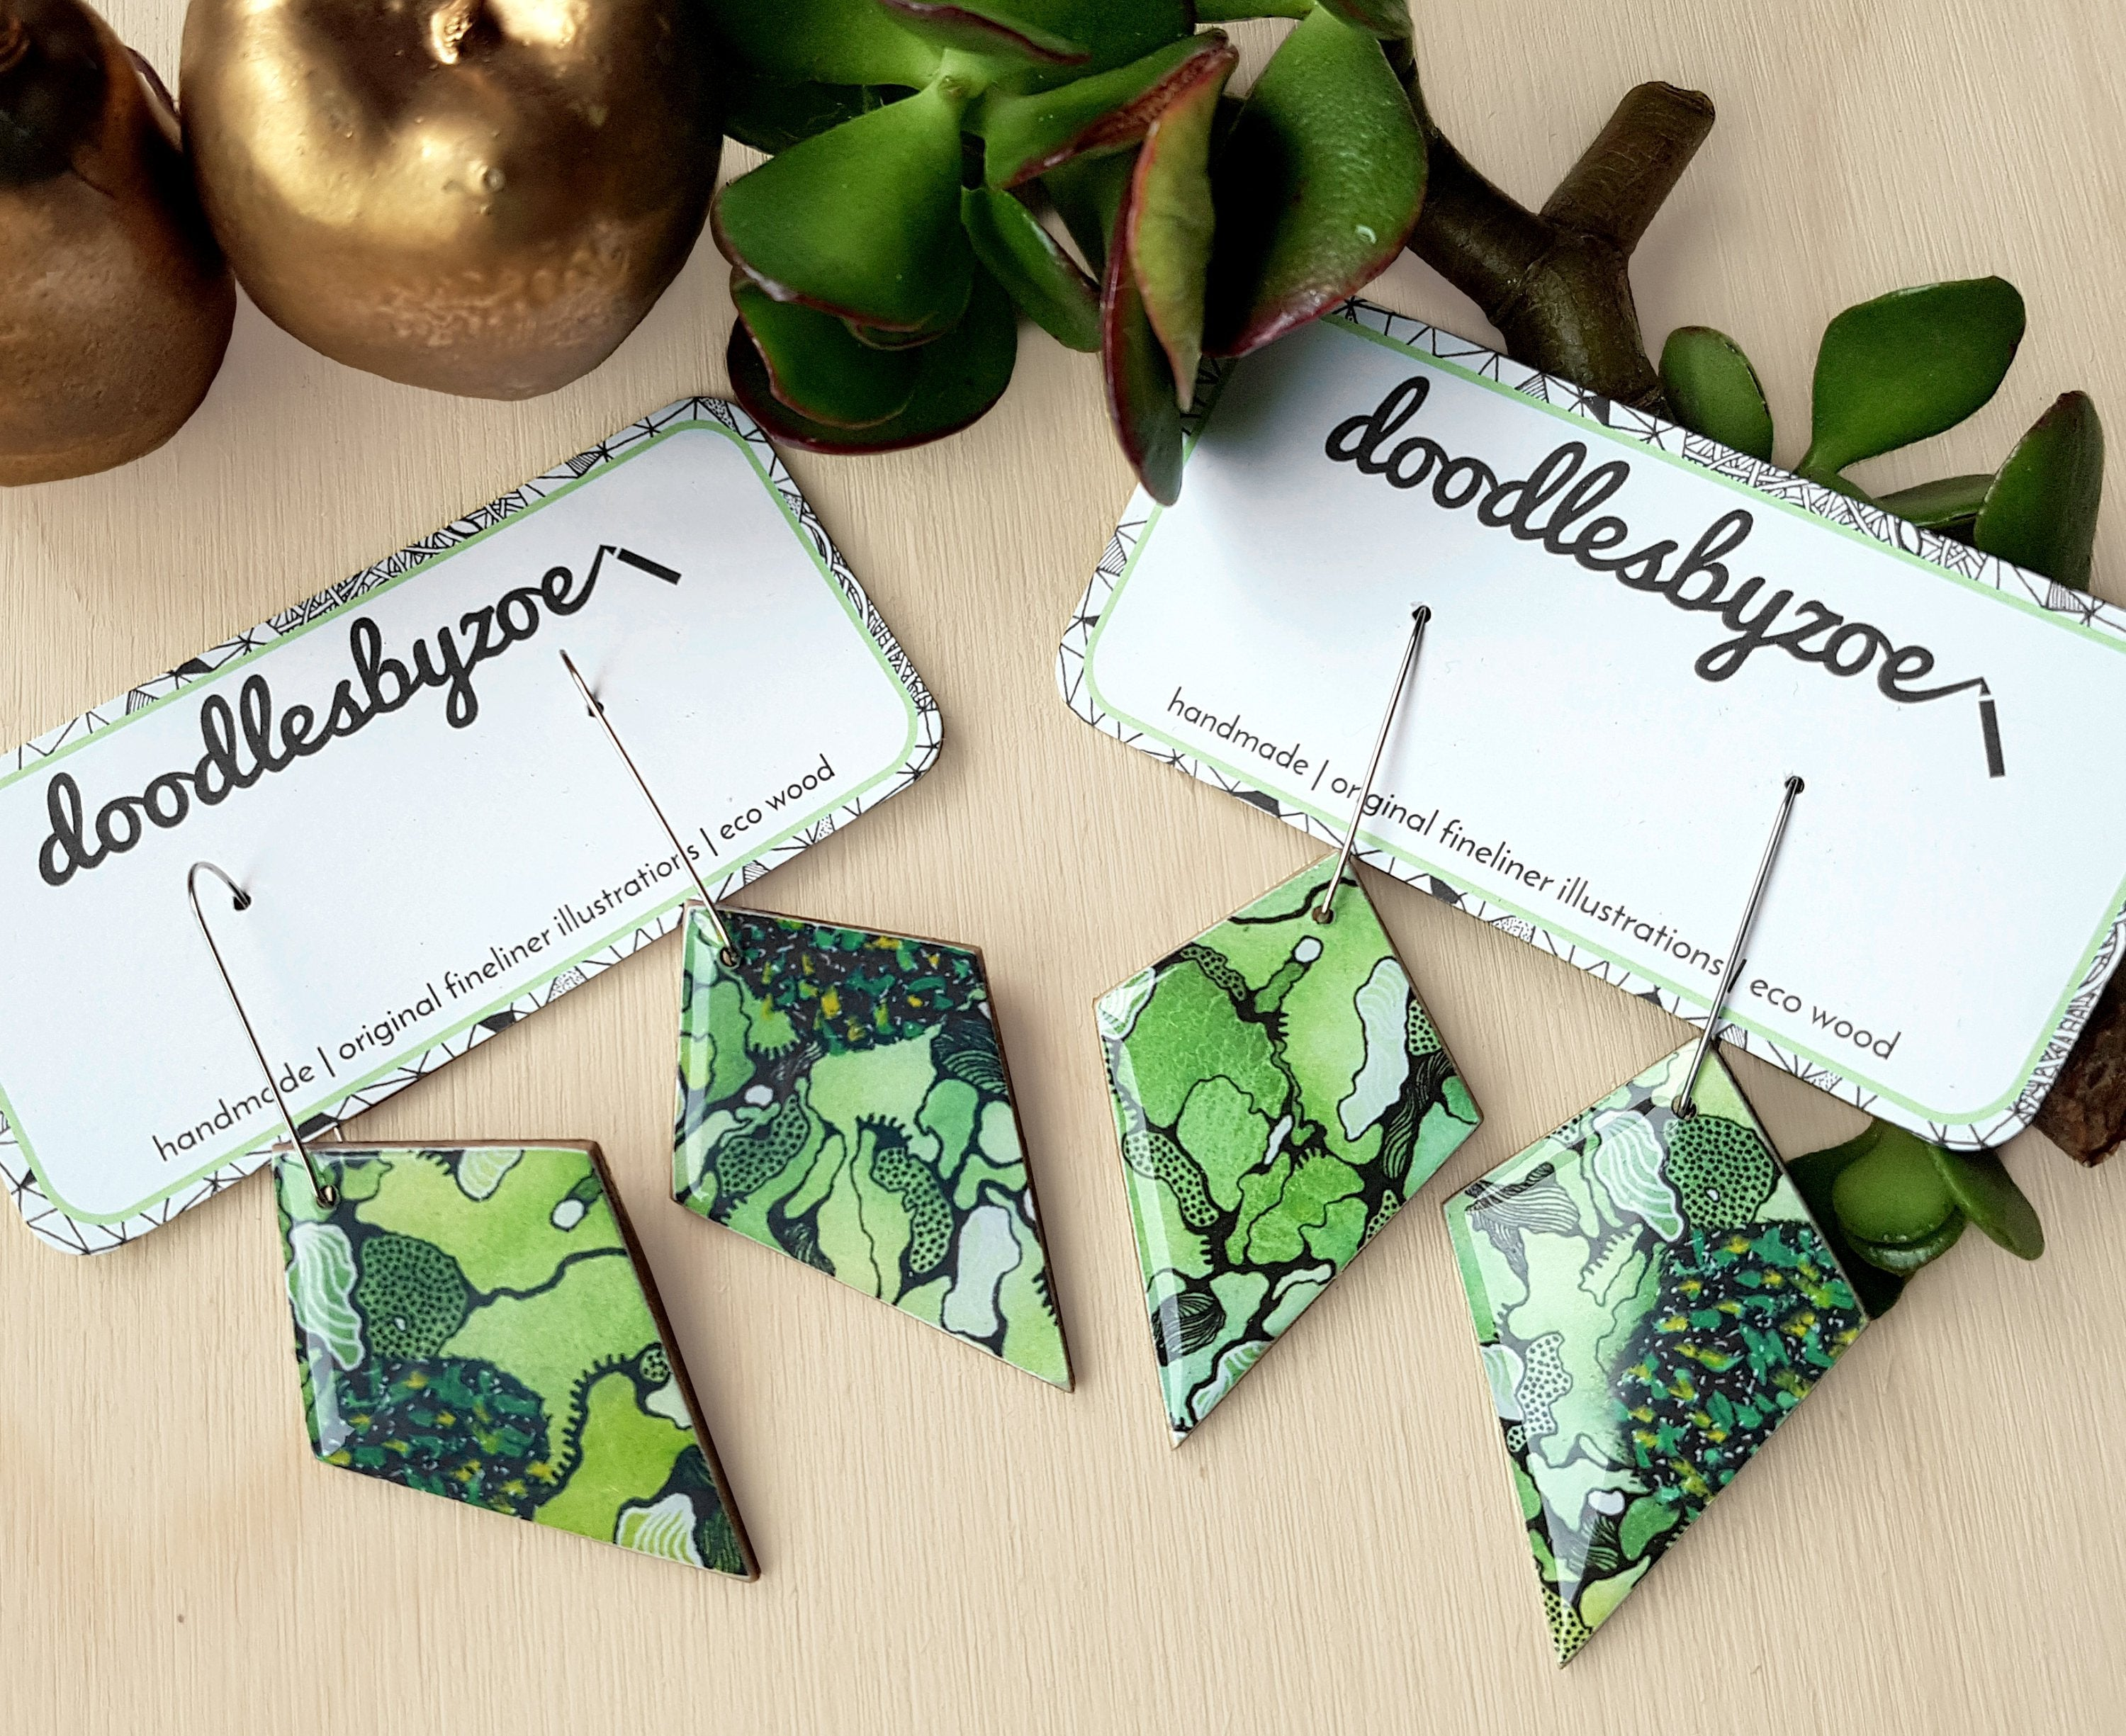 diamond dangle earrings in the pattern greenery